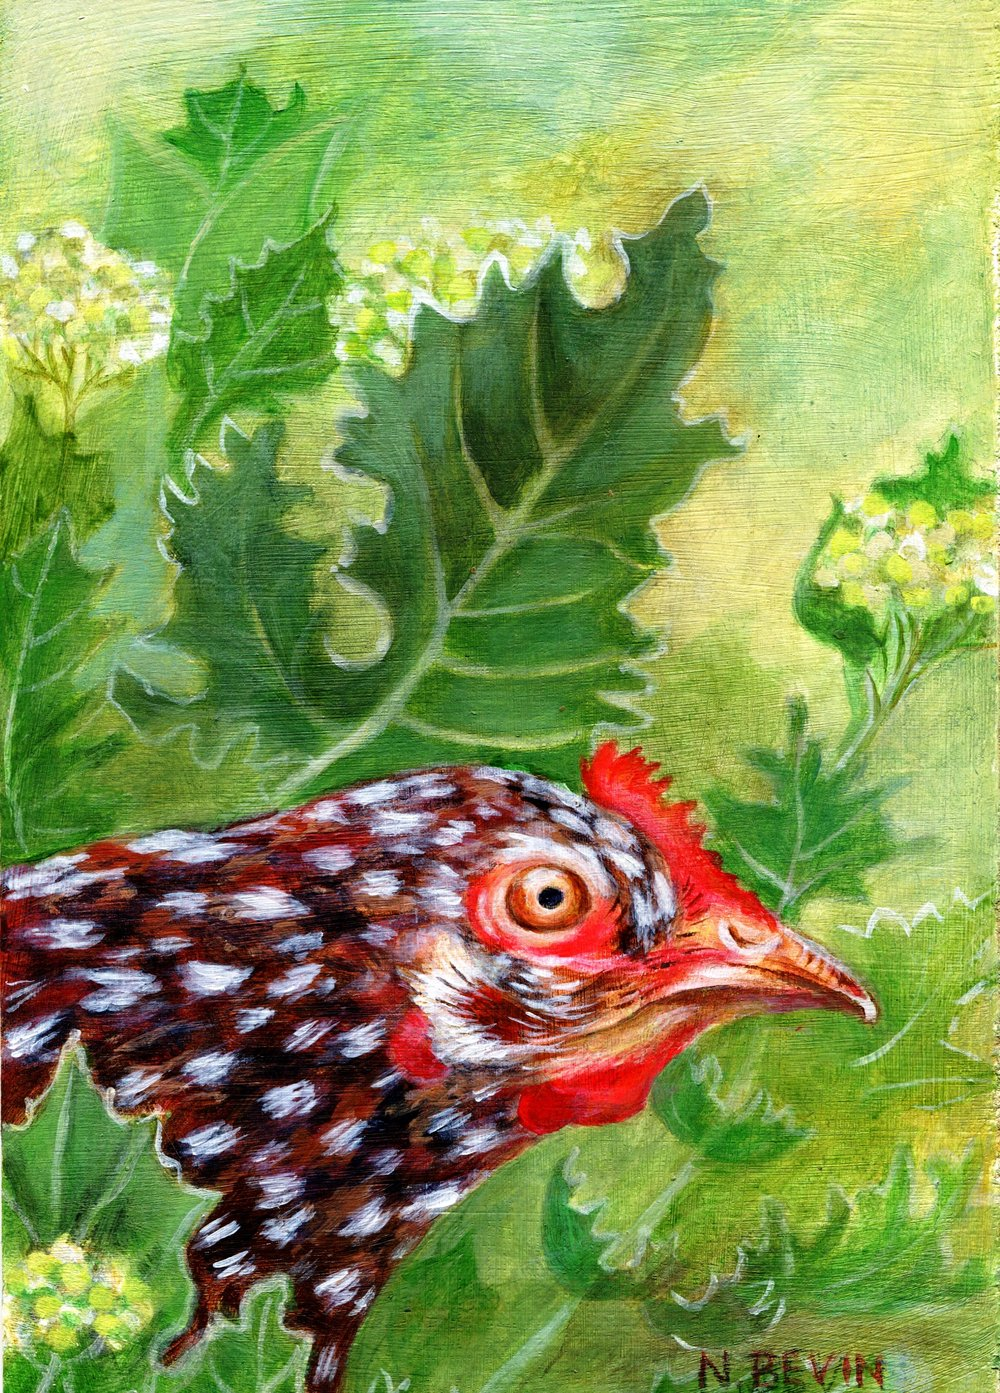 17A NANCY BEVIN, CHICKEN, ACRYLIC ON BOARD